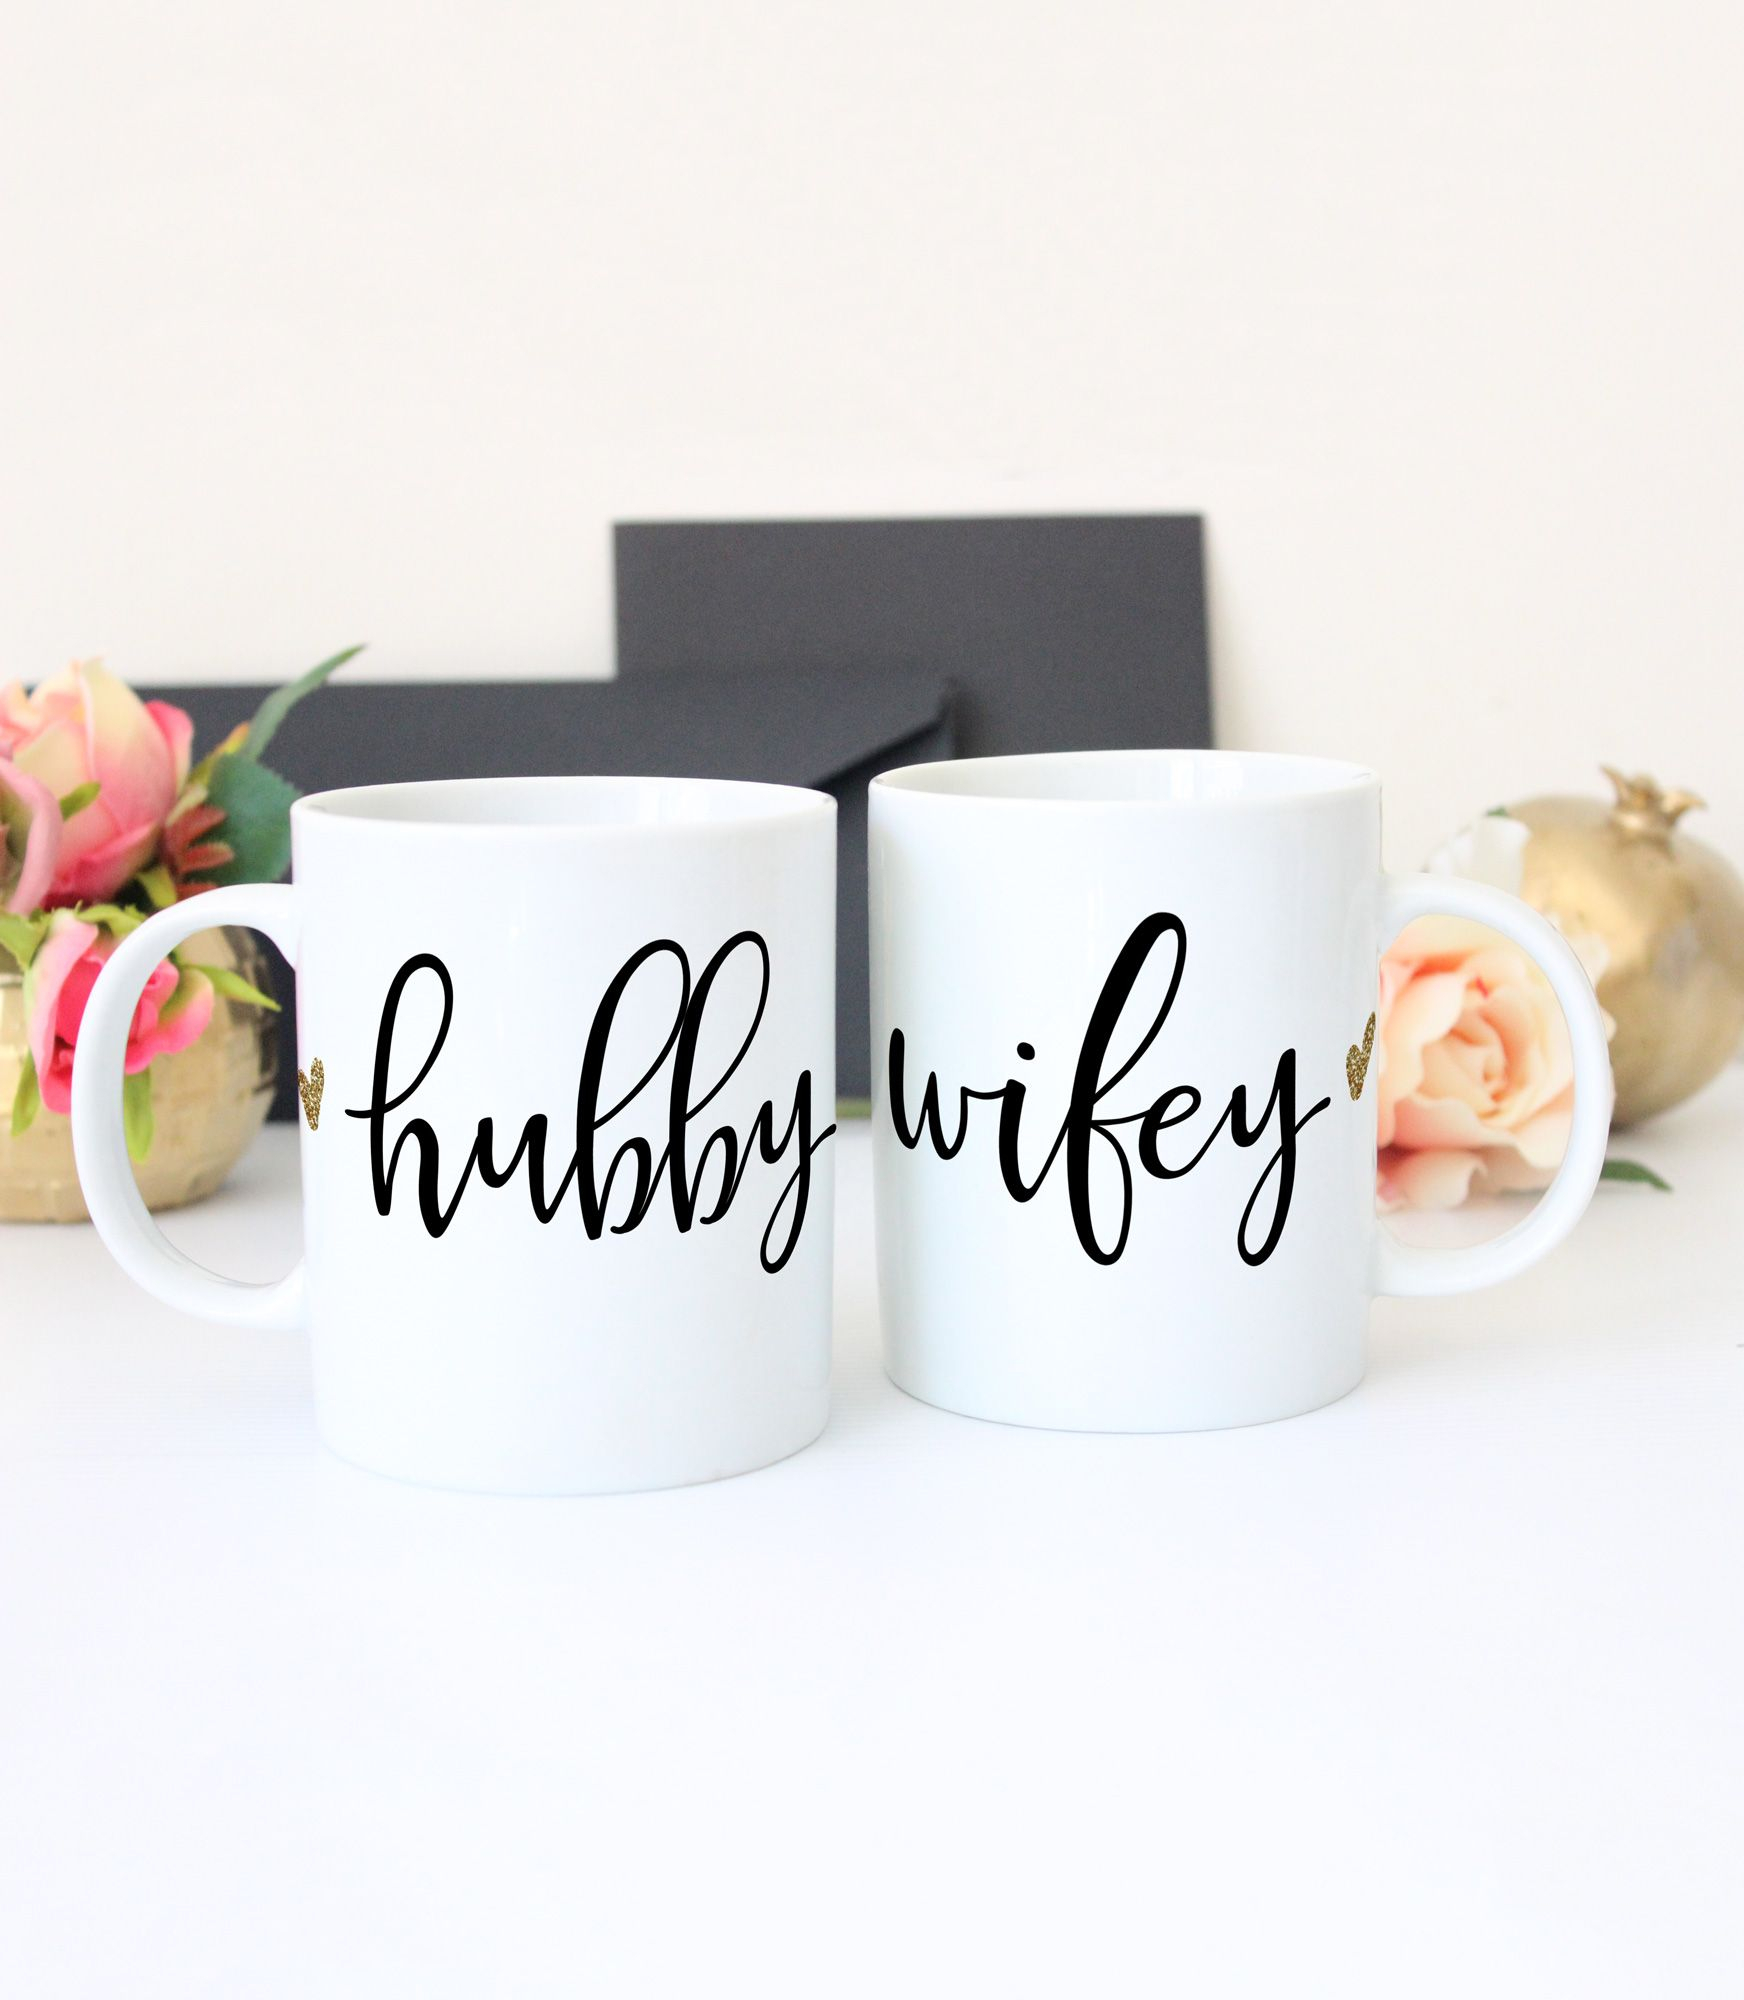 10 Most Recommended Valentines Day Ideas For Newlyweds valentines day gift ideas matching mugs for couples great ideas 2021